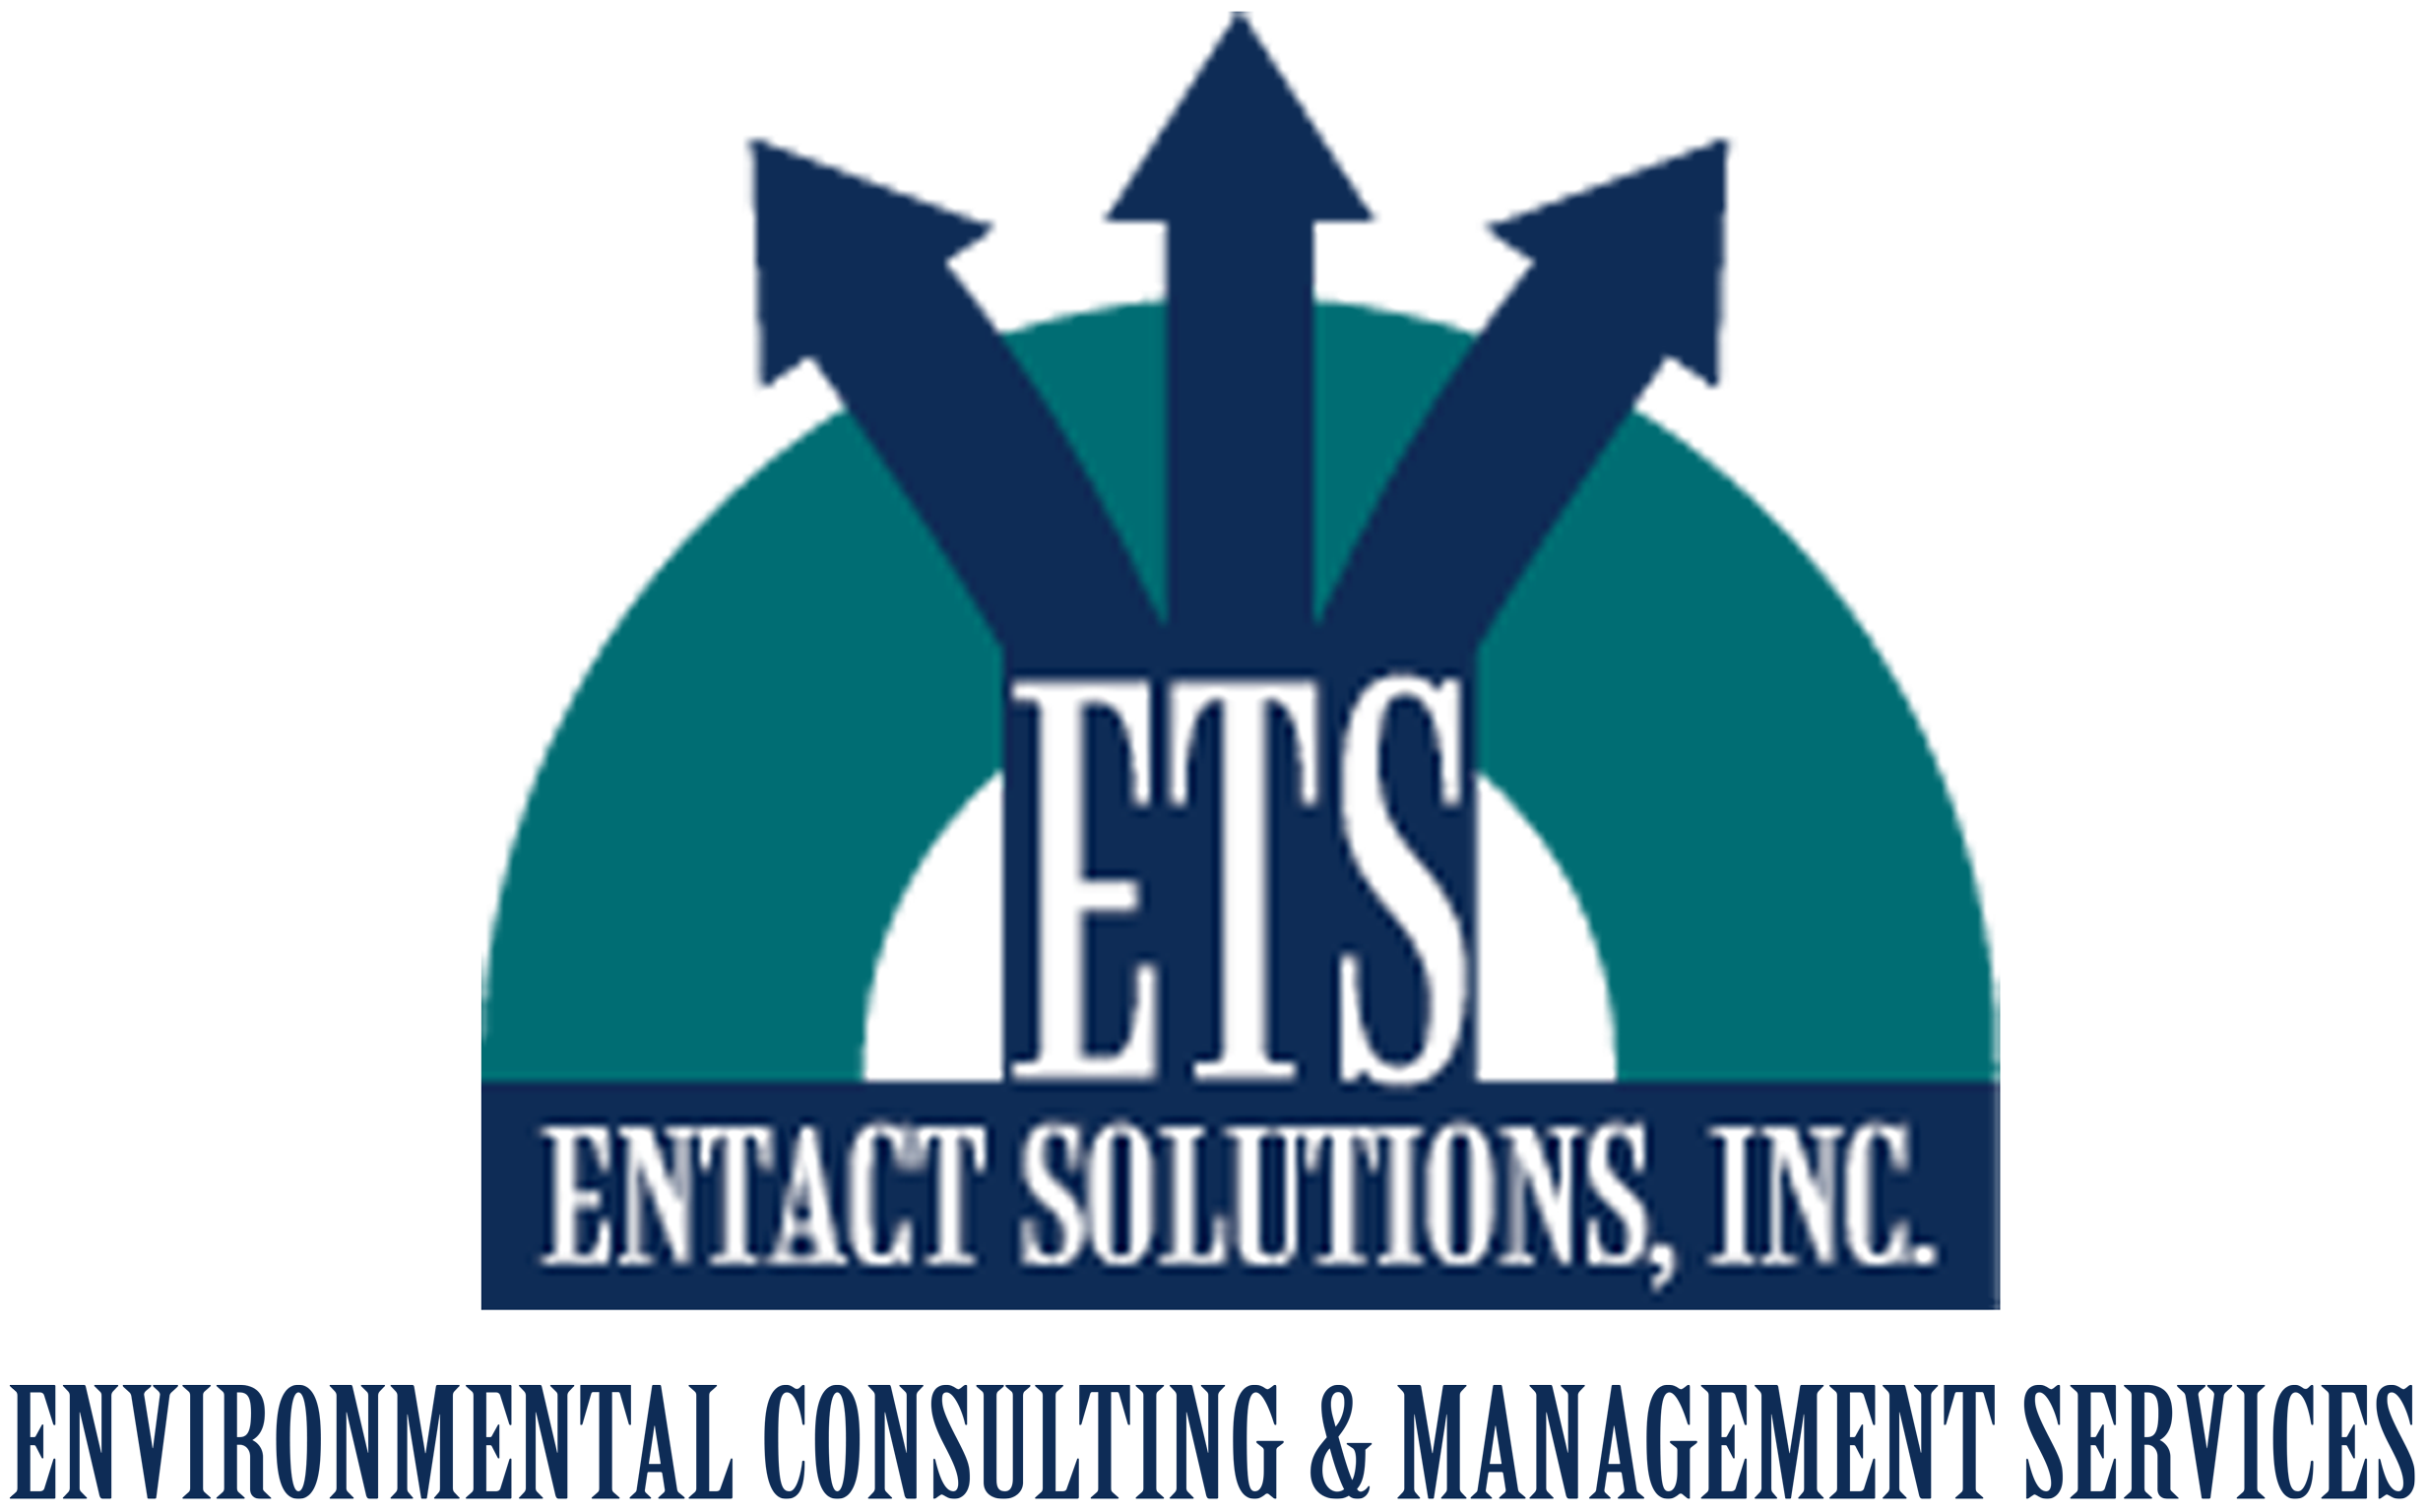 EnTact Solutions, Inc. (ETS)